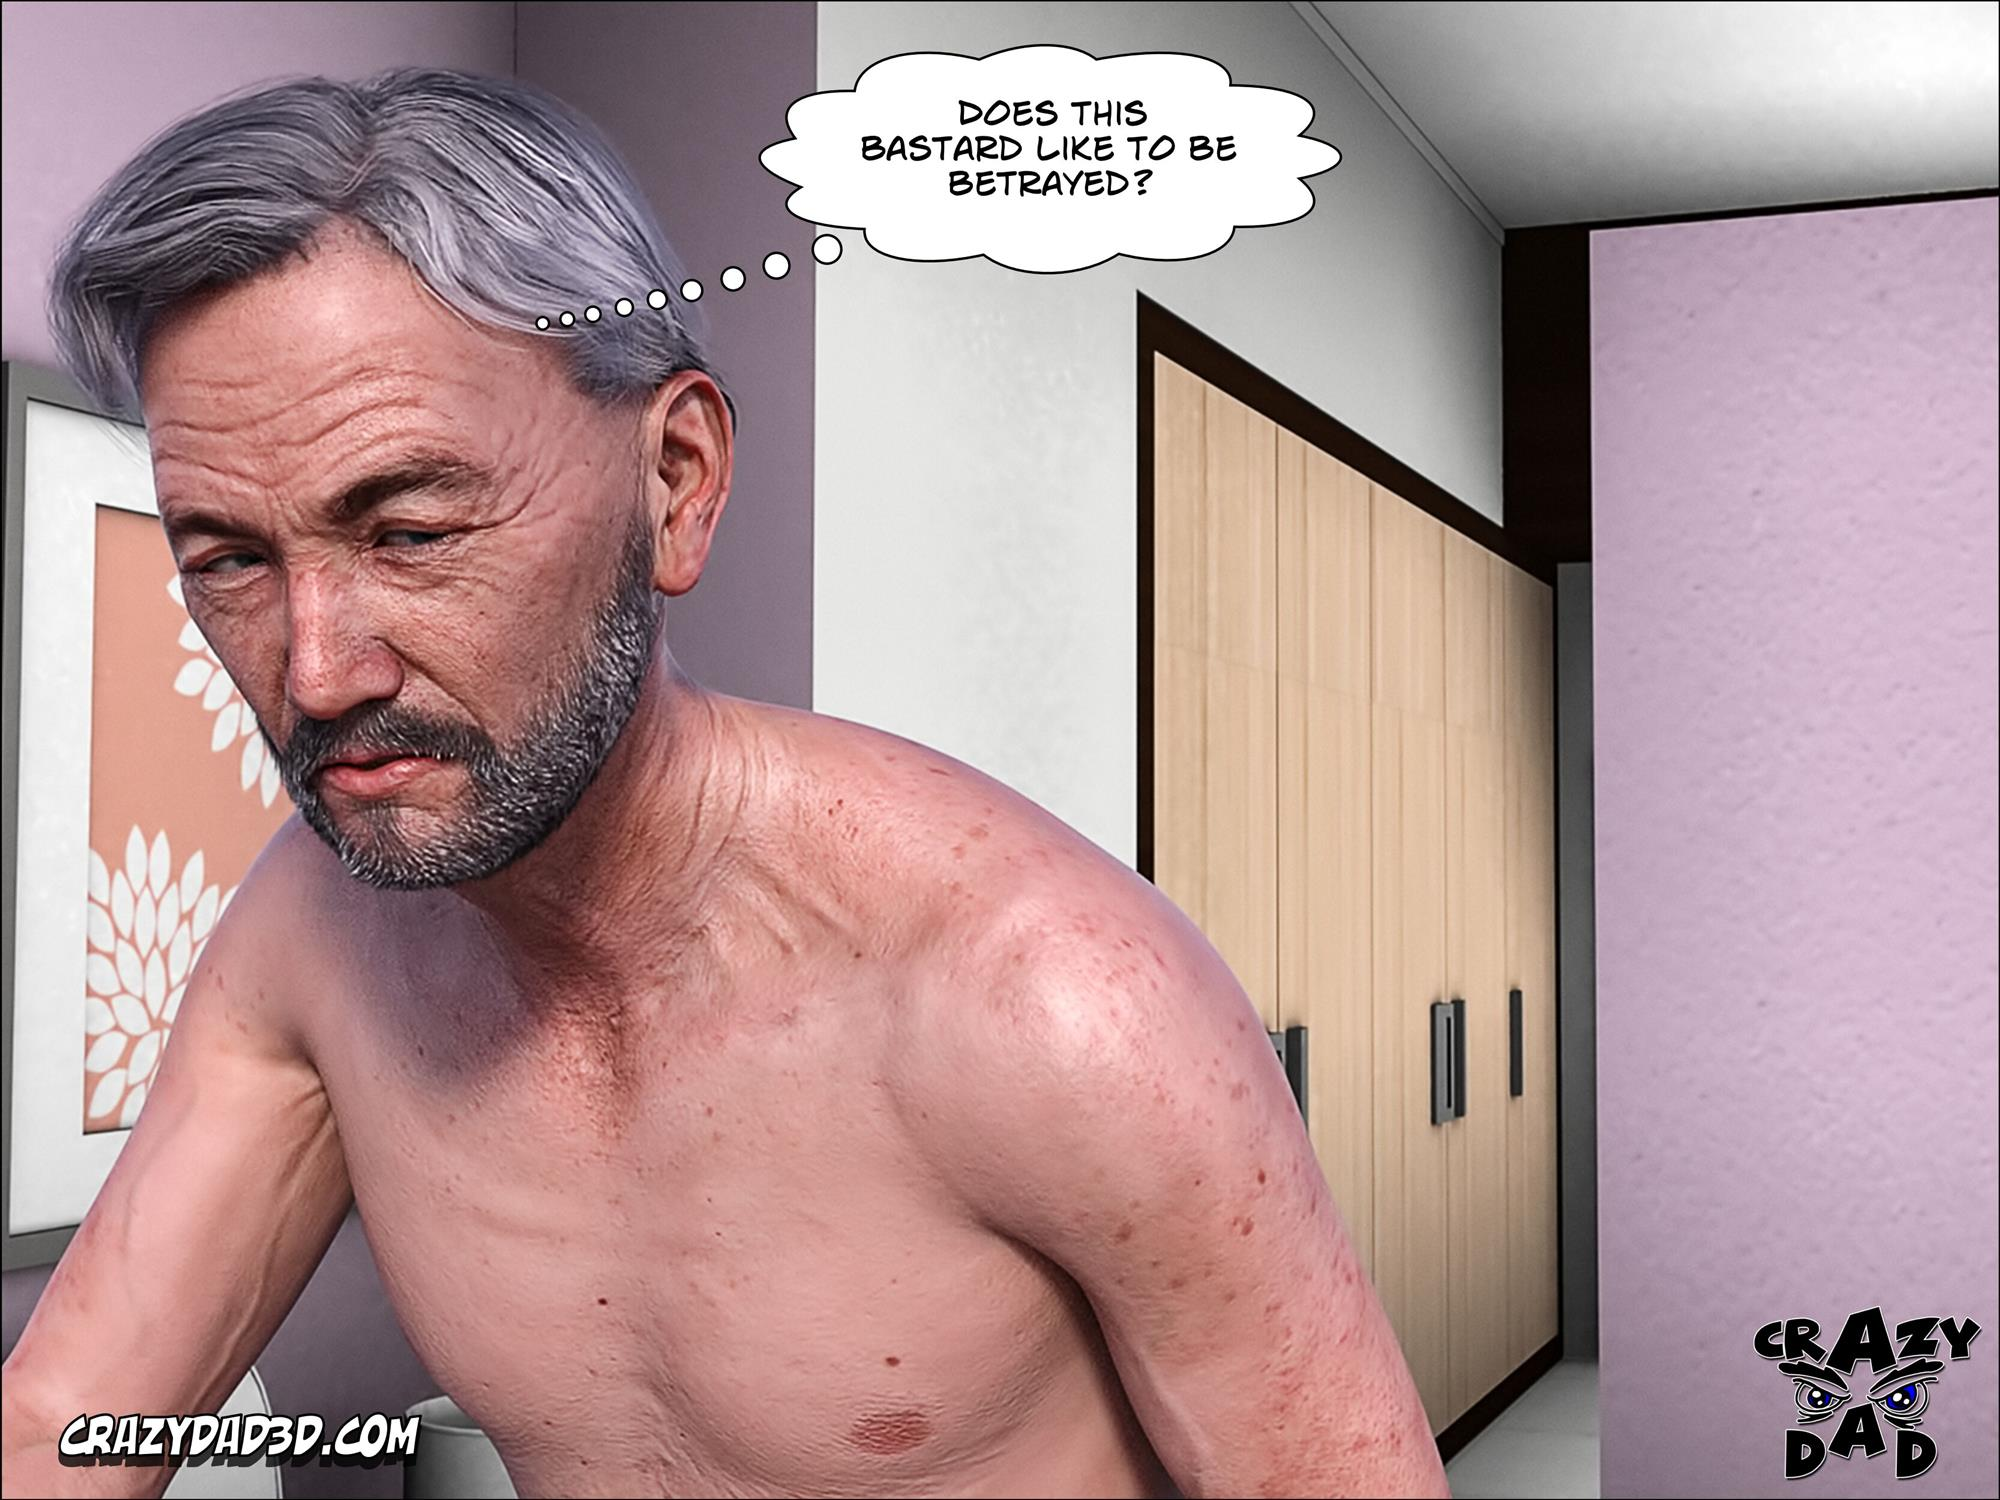 Father-in-Law at Home 10 [Crazy Dad 3D] - Foto 23